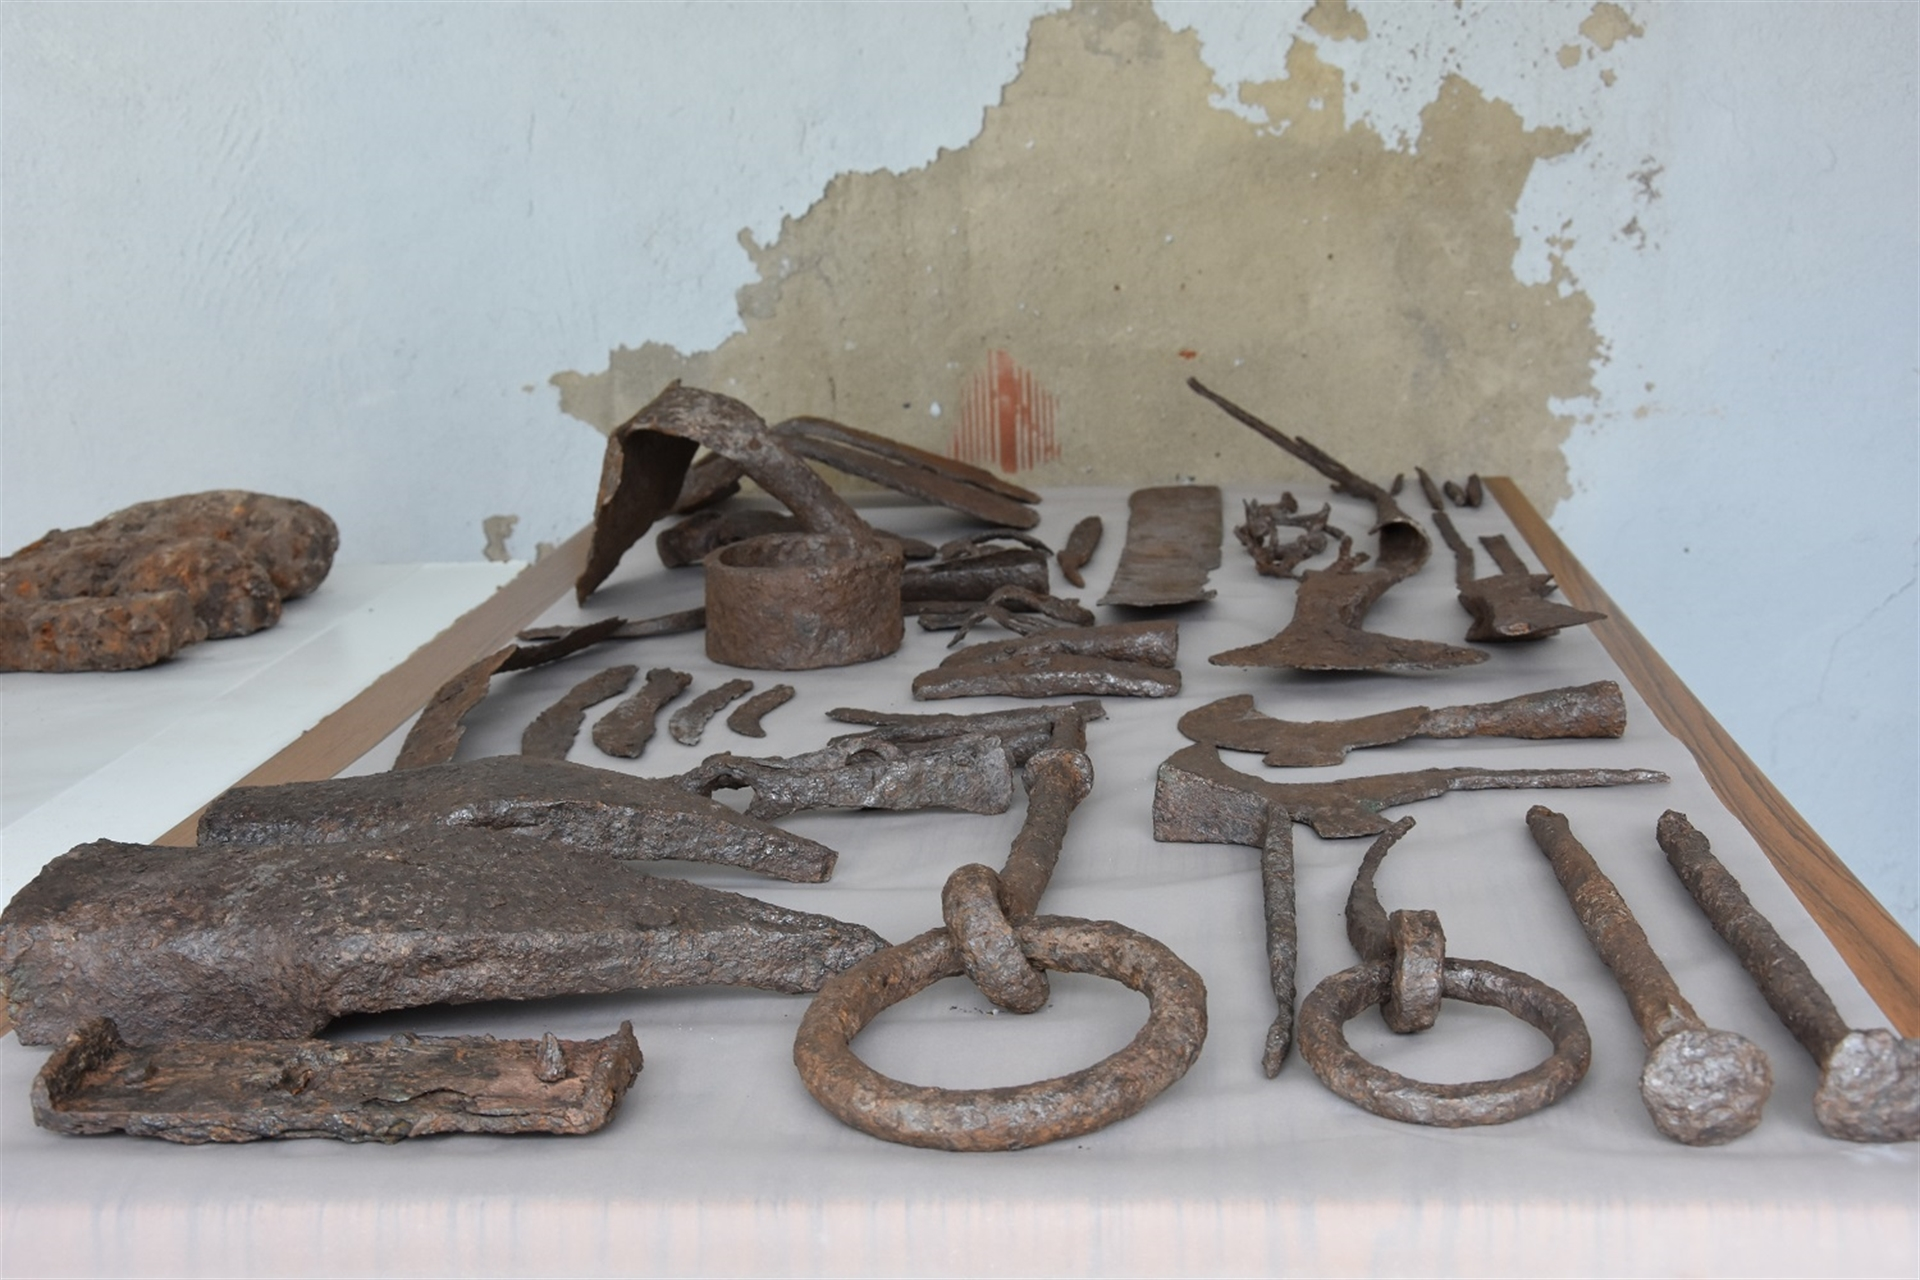 The History Blog » Blog Archive » Farmer finds 1,500-year